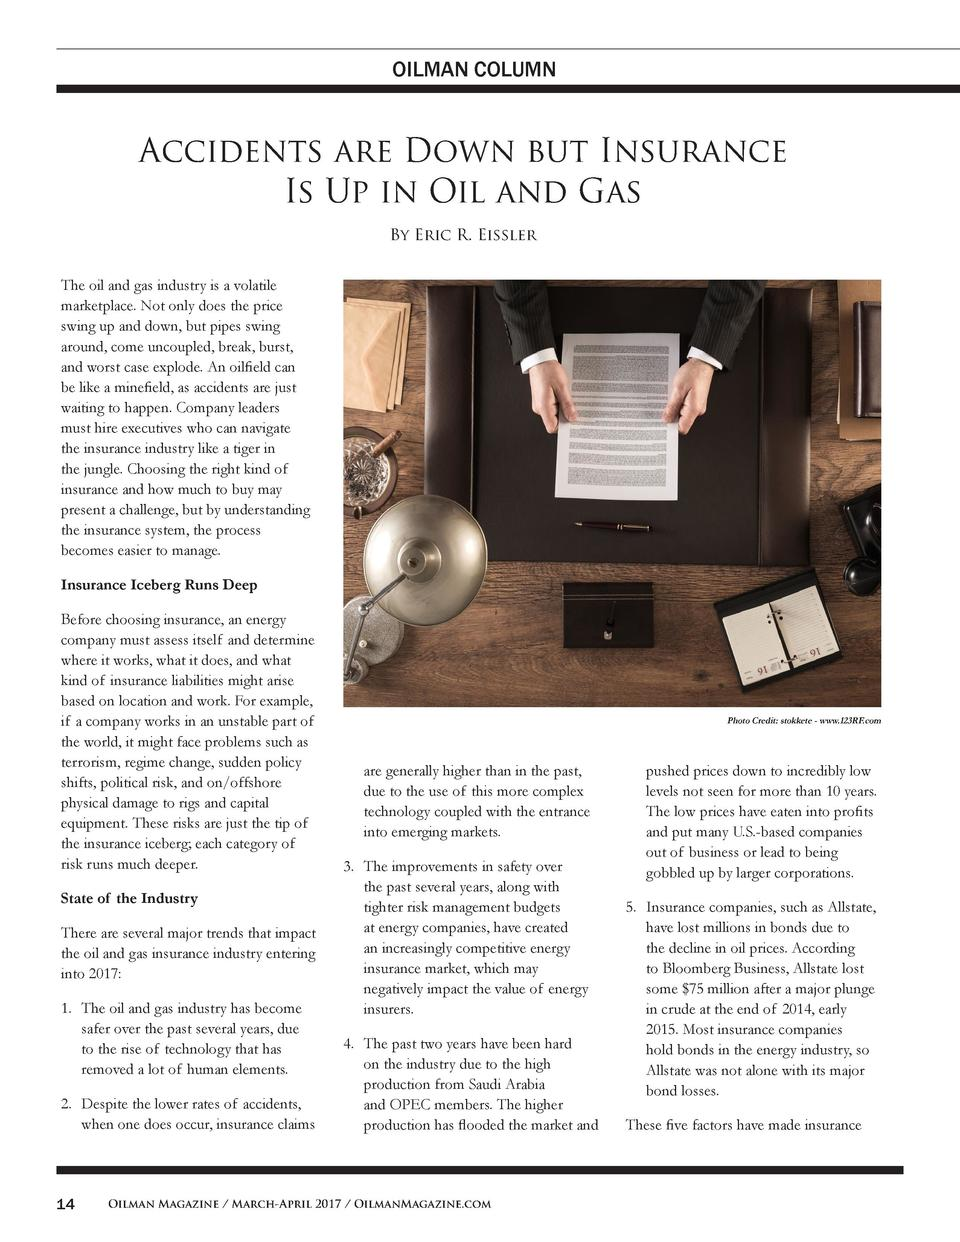 OILMAN COLUMN  Accidents are Down but Insurance Is Up in Oil and Gas By Eric R. Eissler The oil and gas industry is a vola...